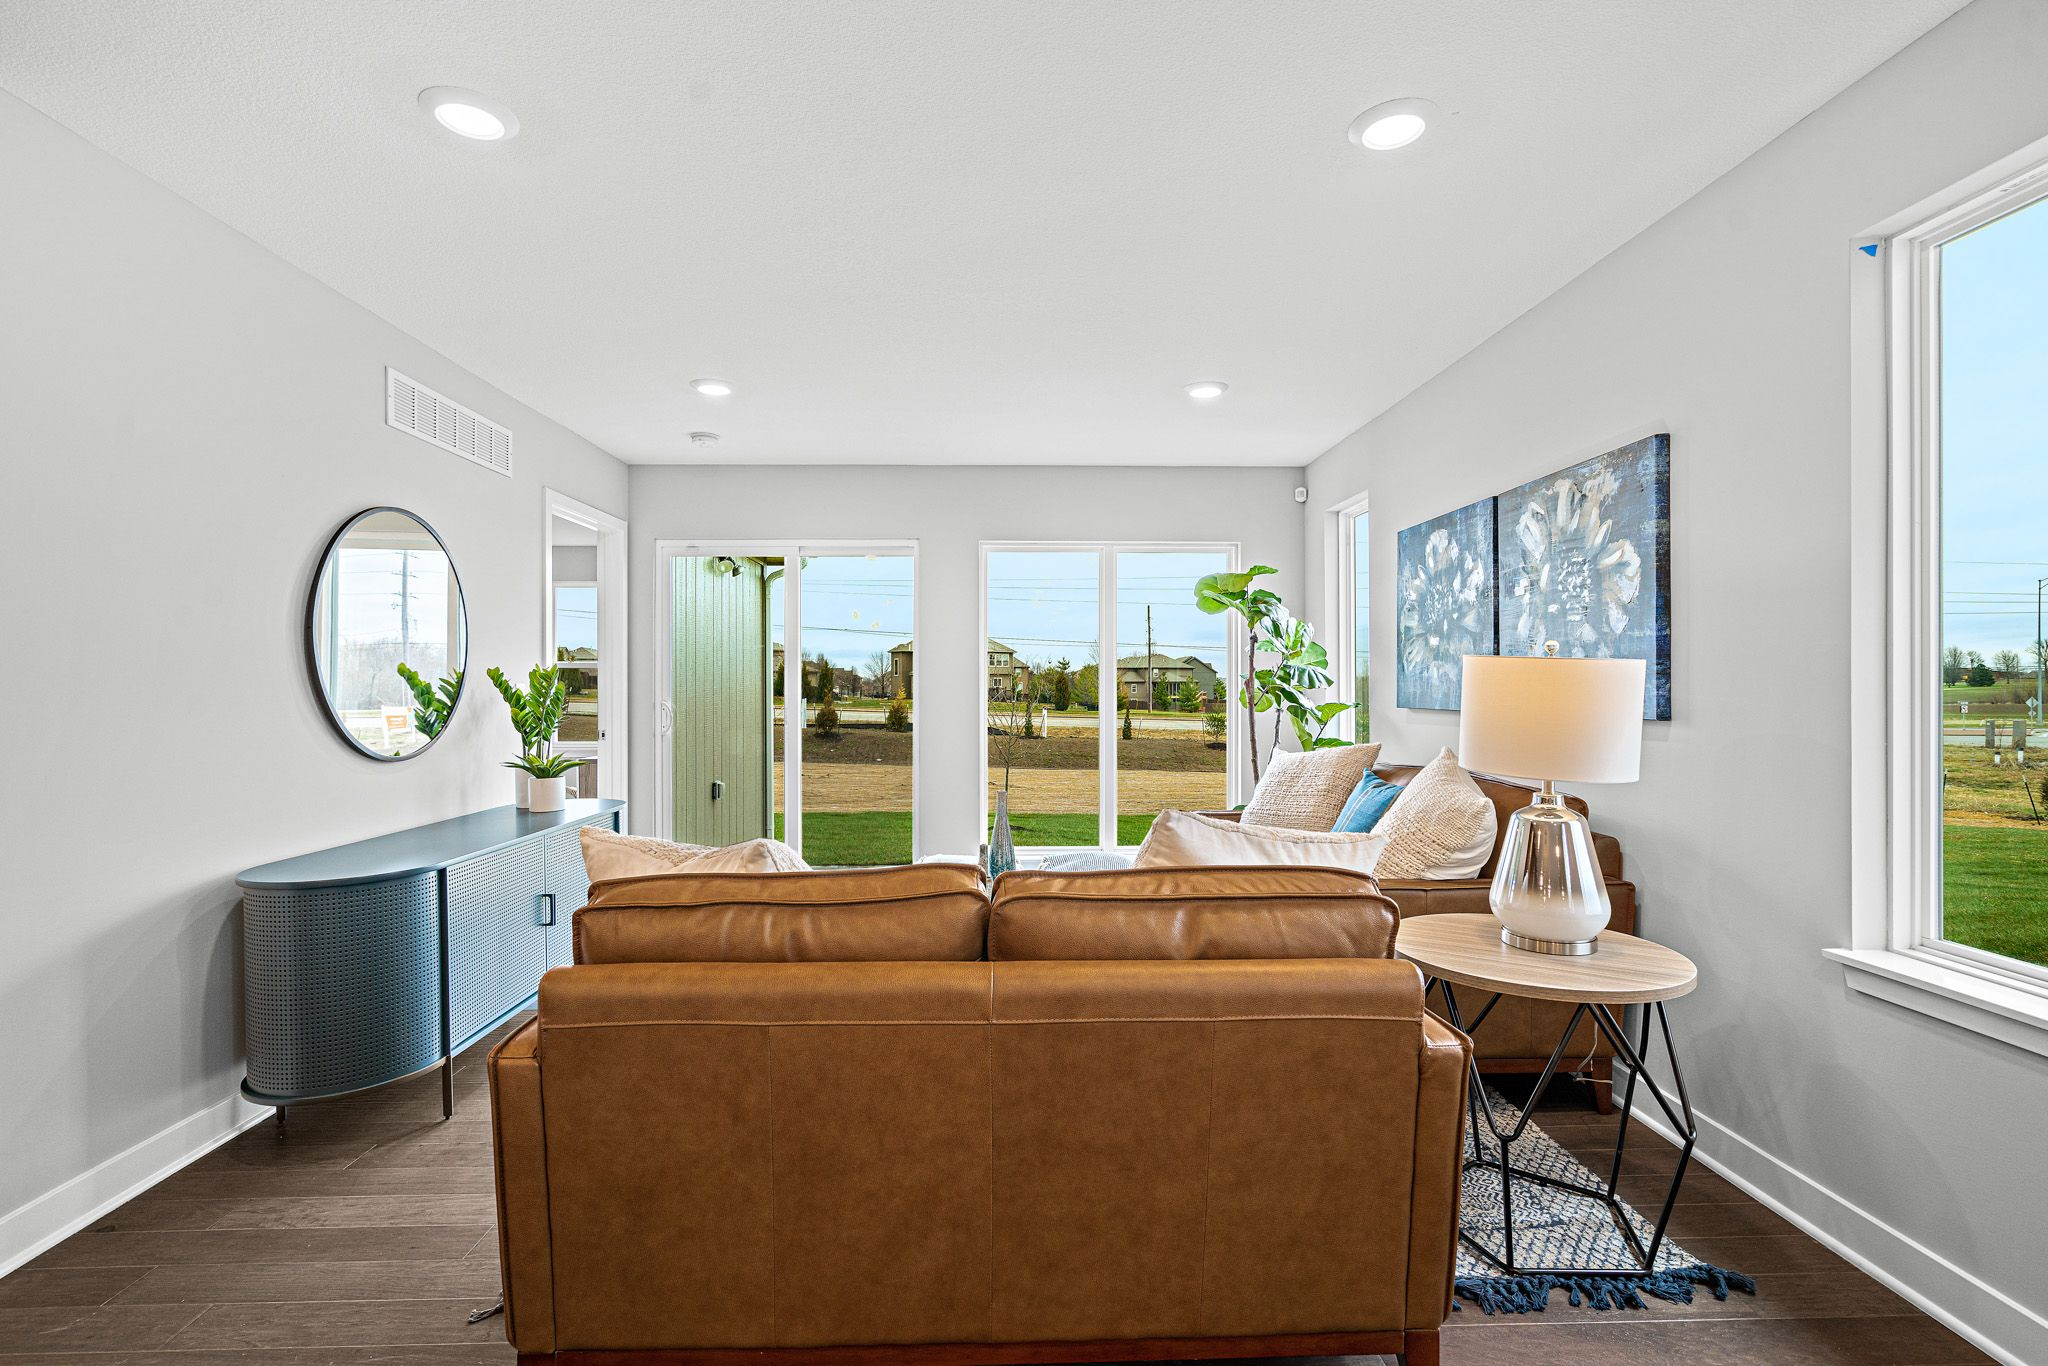 Living Area featured in the sienna By clover & hive in Des Moines, IA